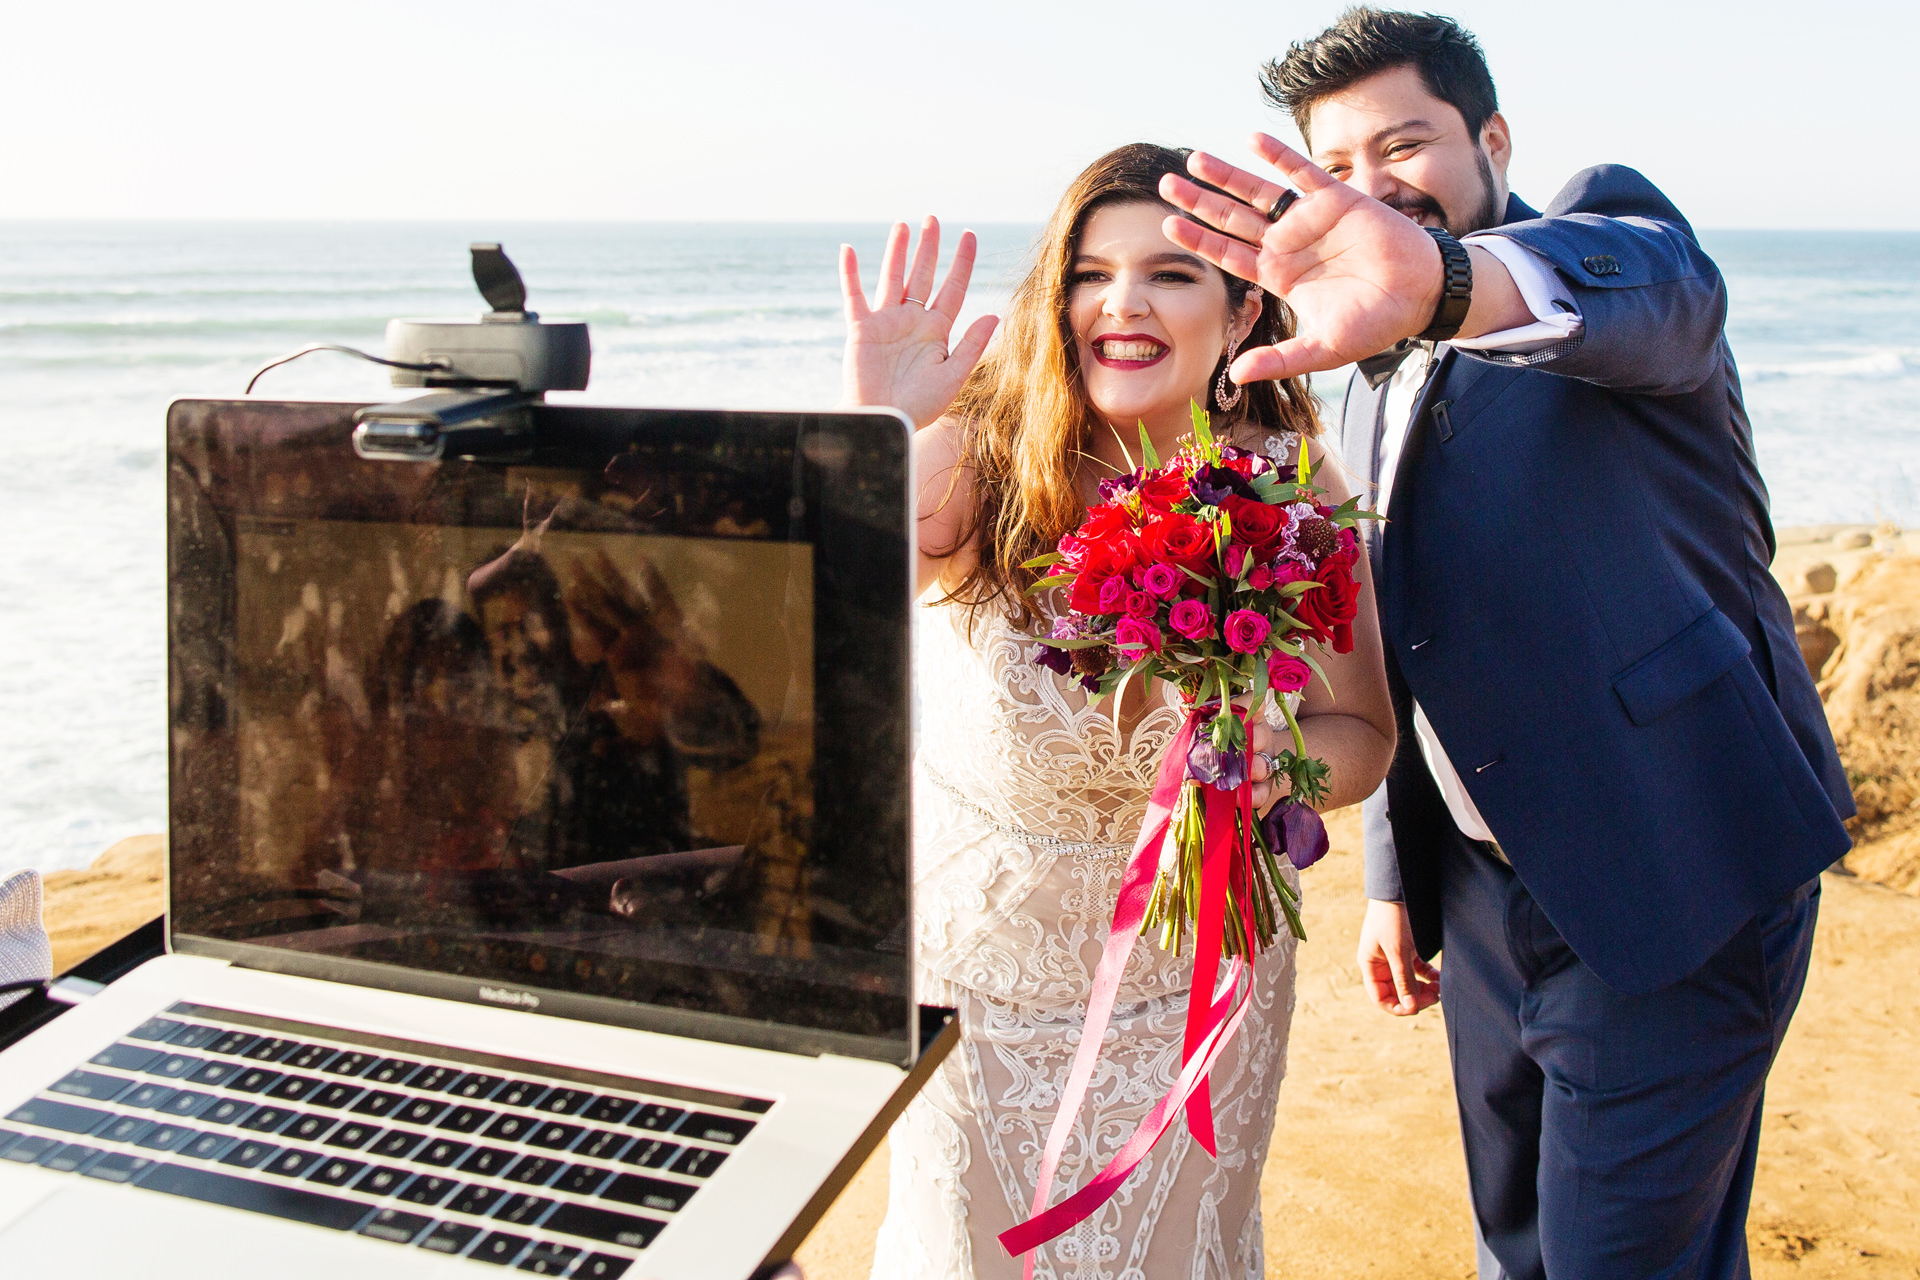 Wedding Photos from Sunset Cliffs, San Diego | they took time to wave hello to everyone who signed onto the live stream